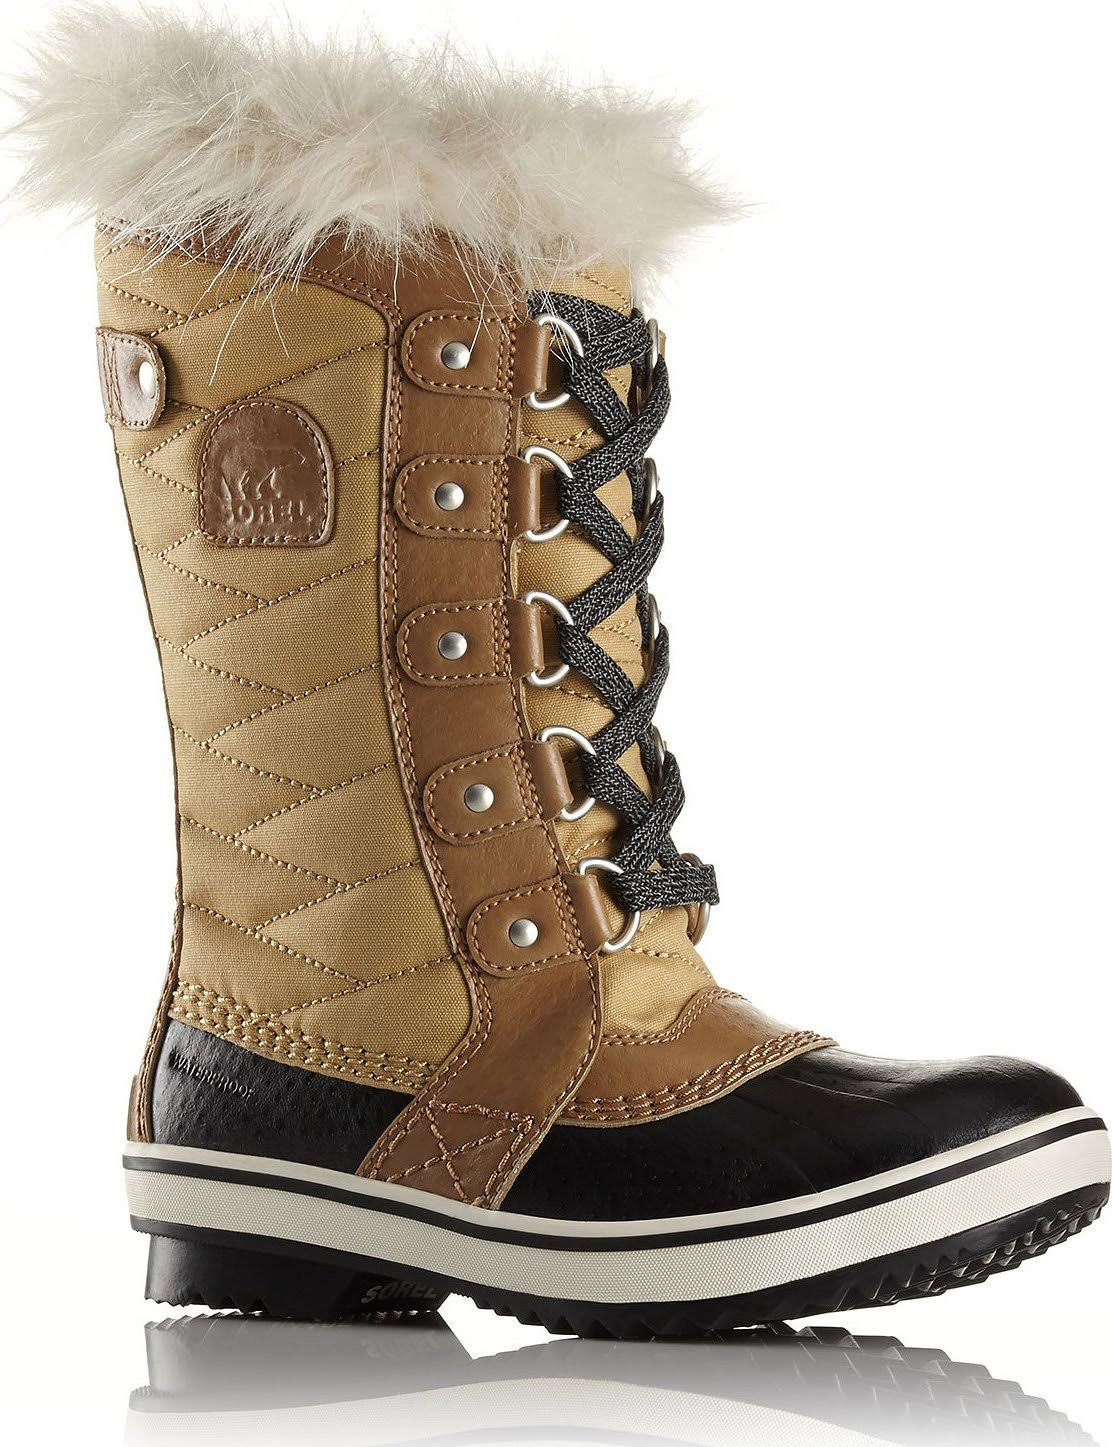 Sorel Youth Tofino II Boot - Curry